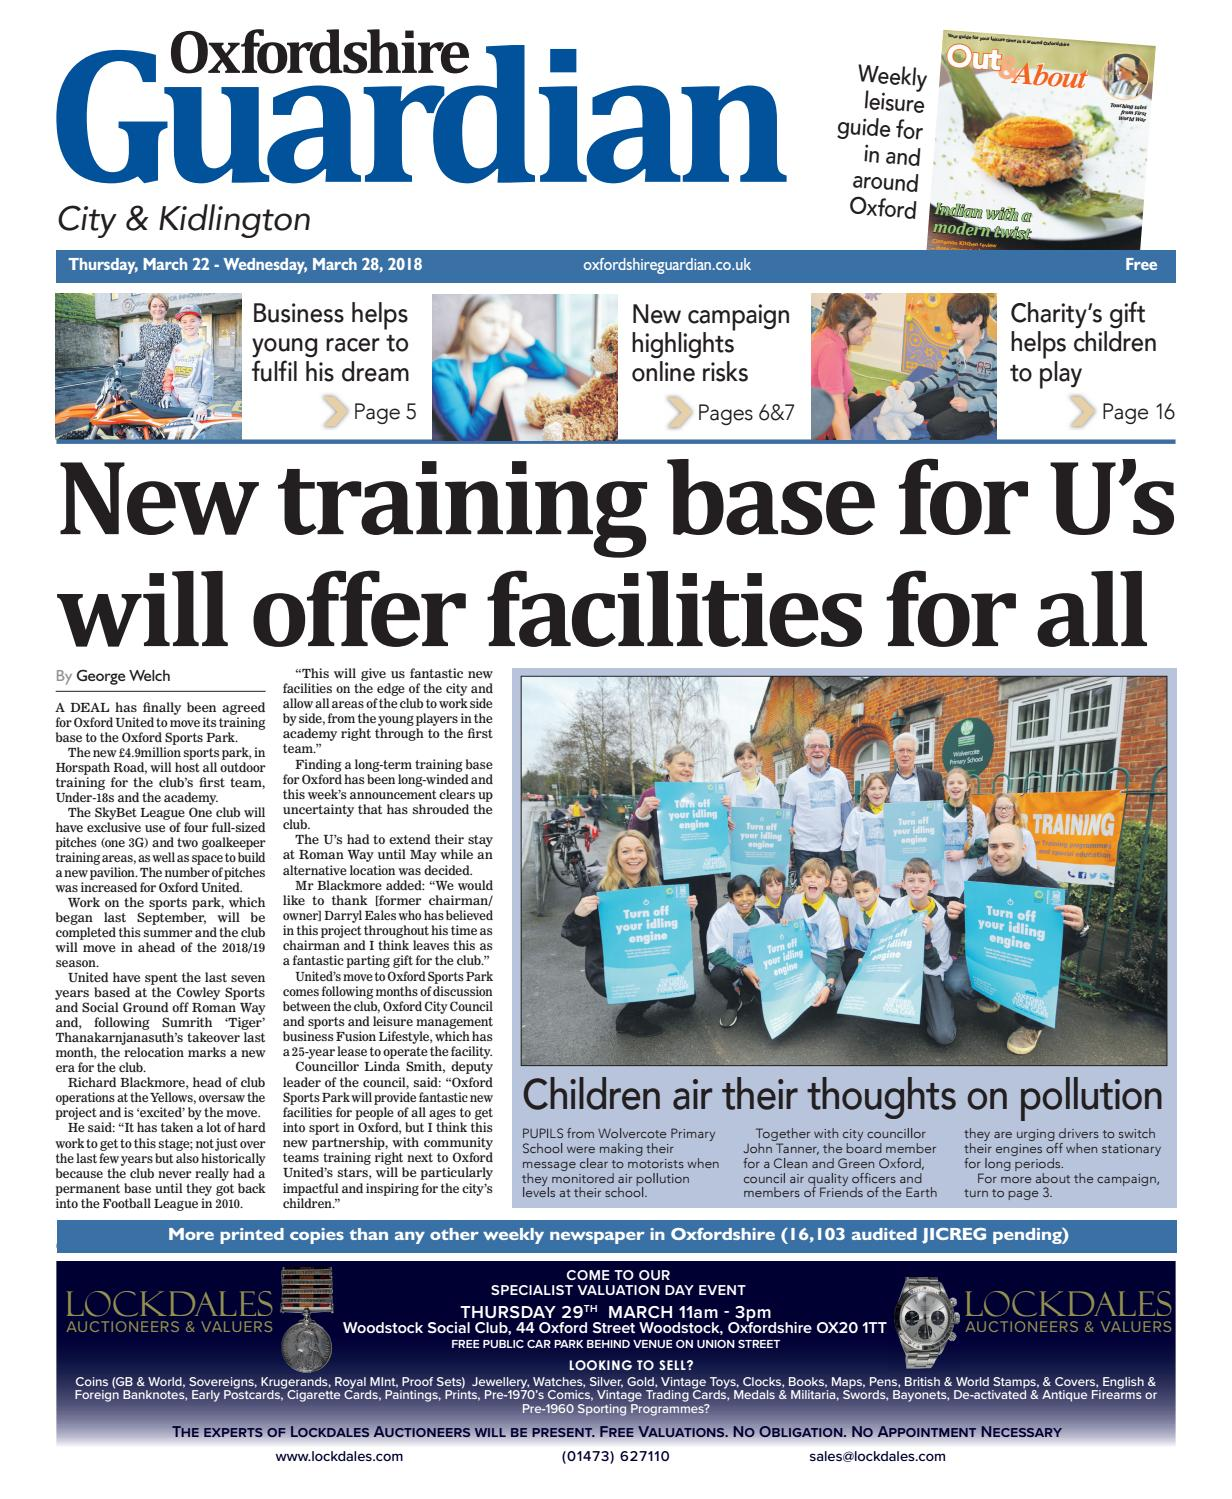 a1655c125ce1 15 march 2018 oxfordshire guardian city by Taylor Newspapers - issuu